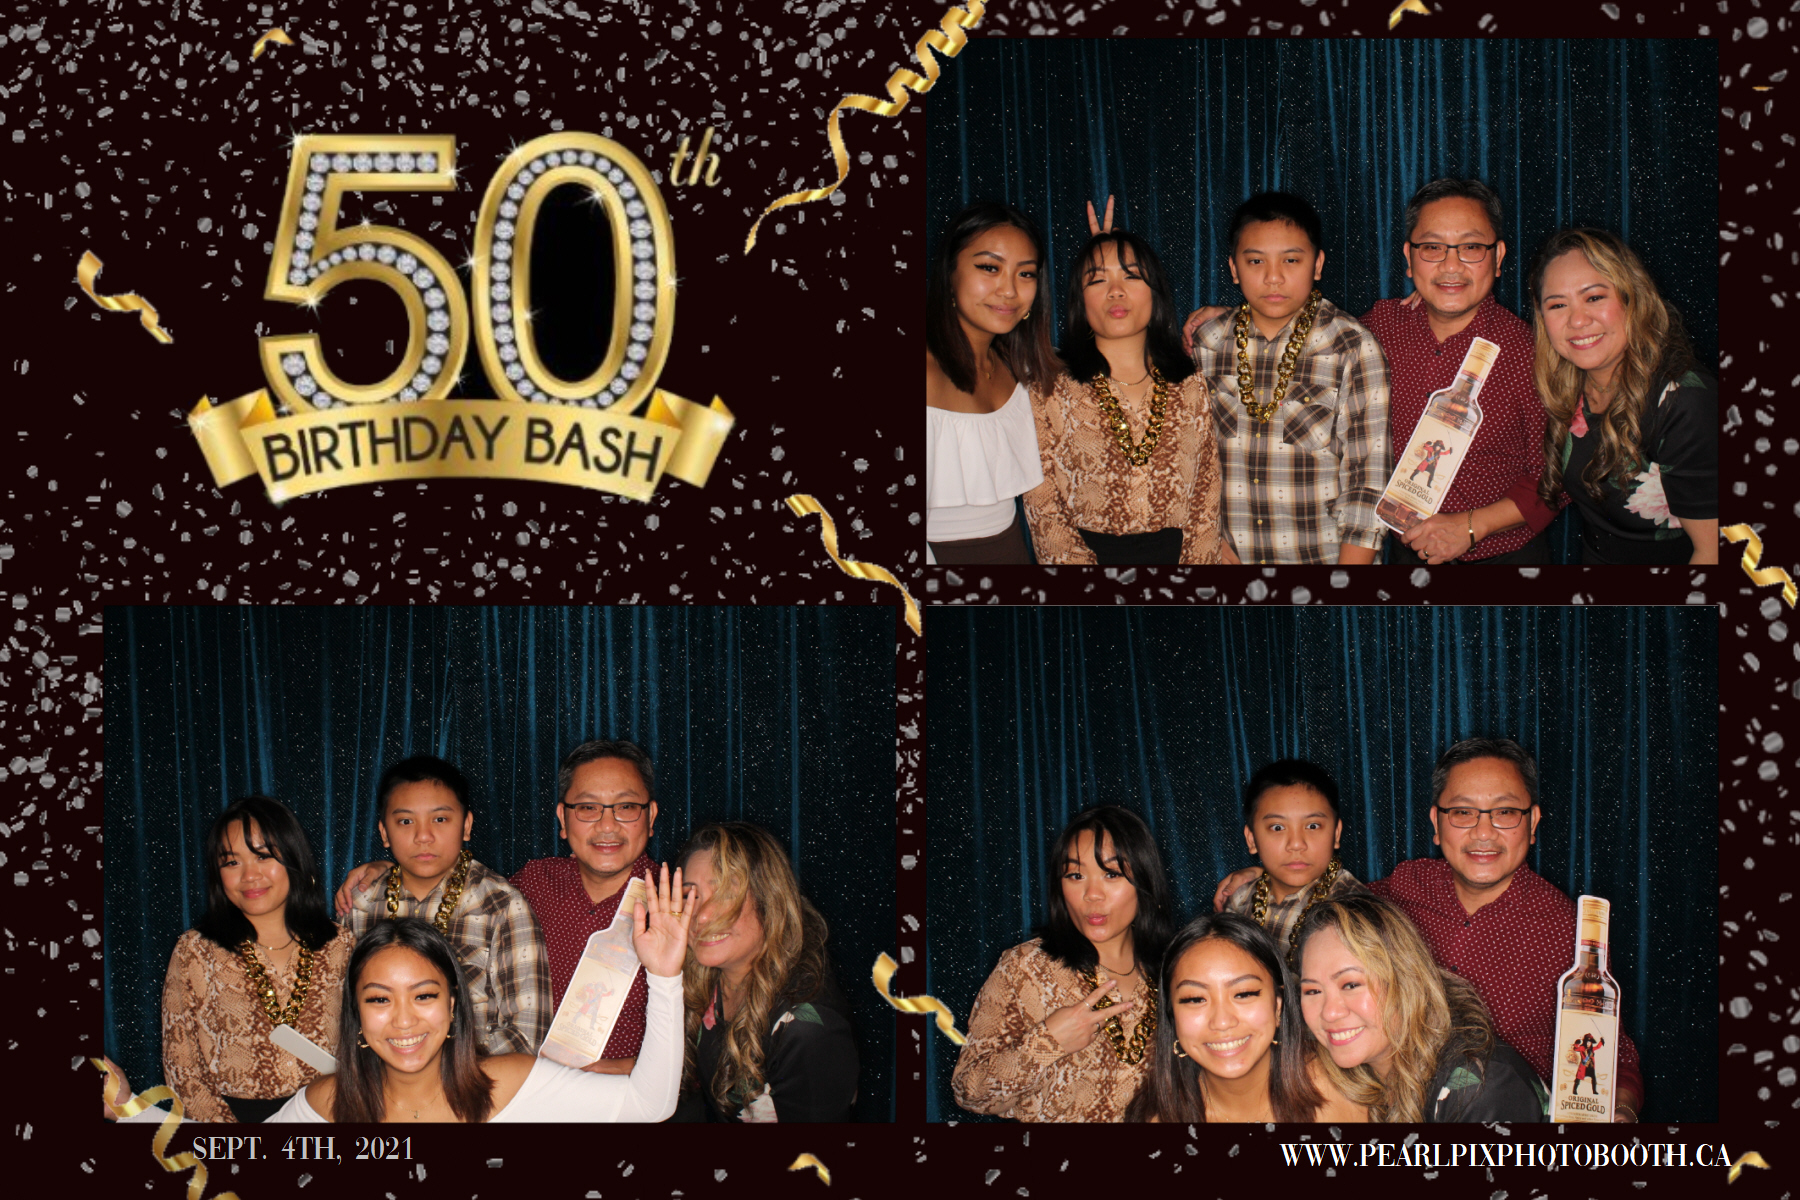 Peter_s 50th Bday_33